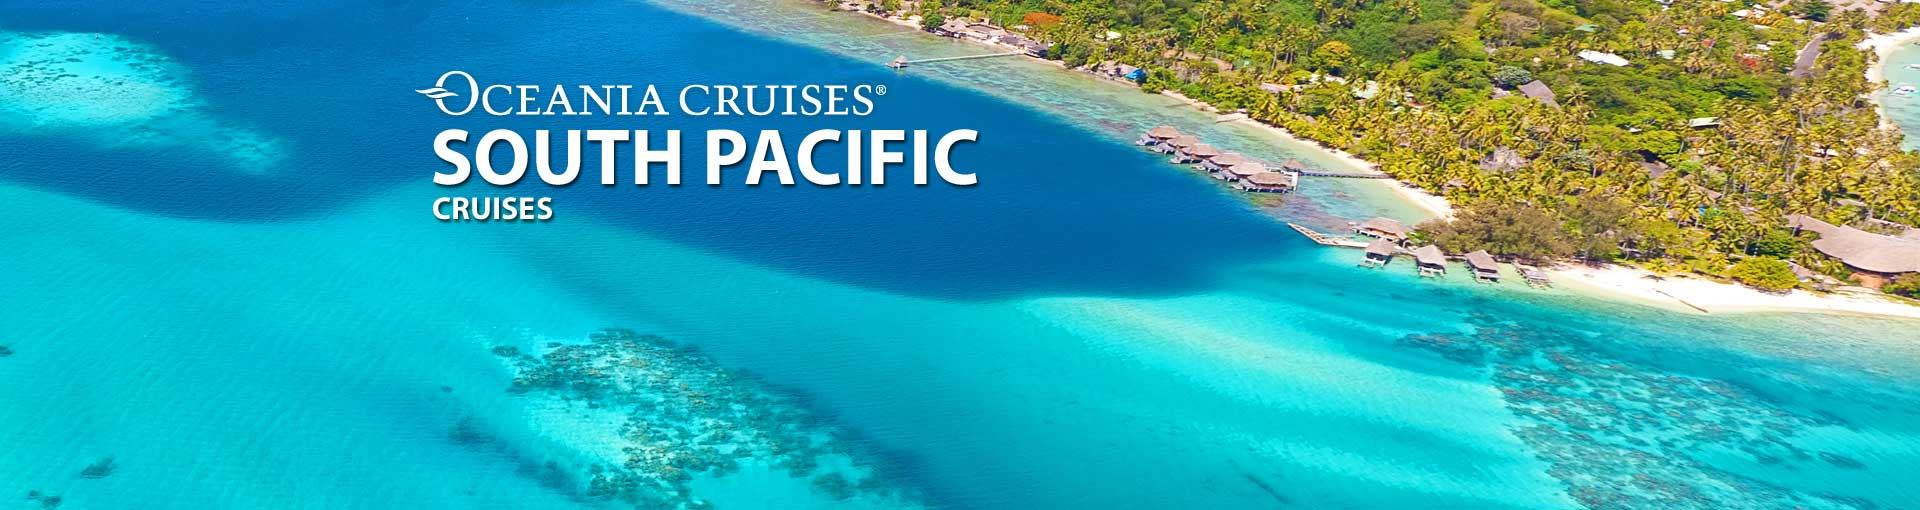 Oceania Cruises South Pacific Tahiti Cruises